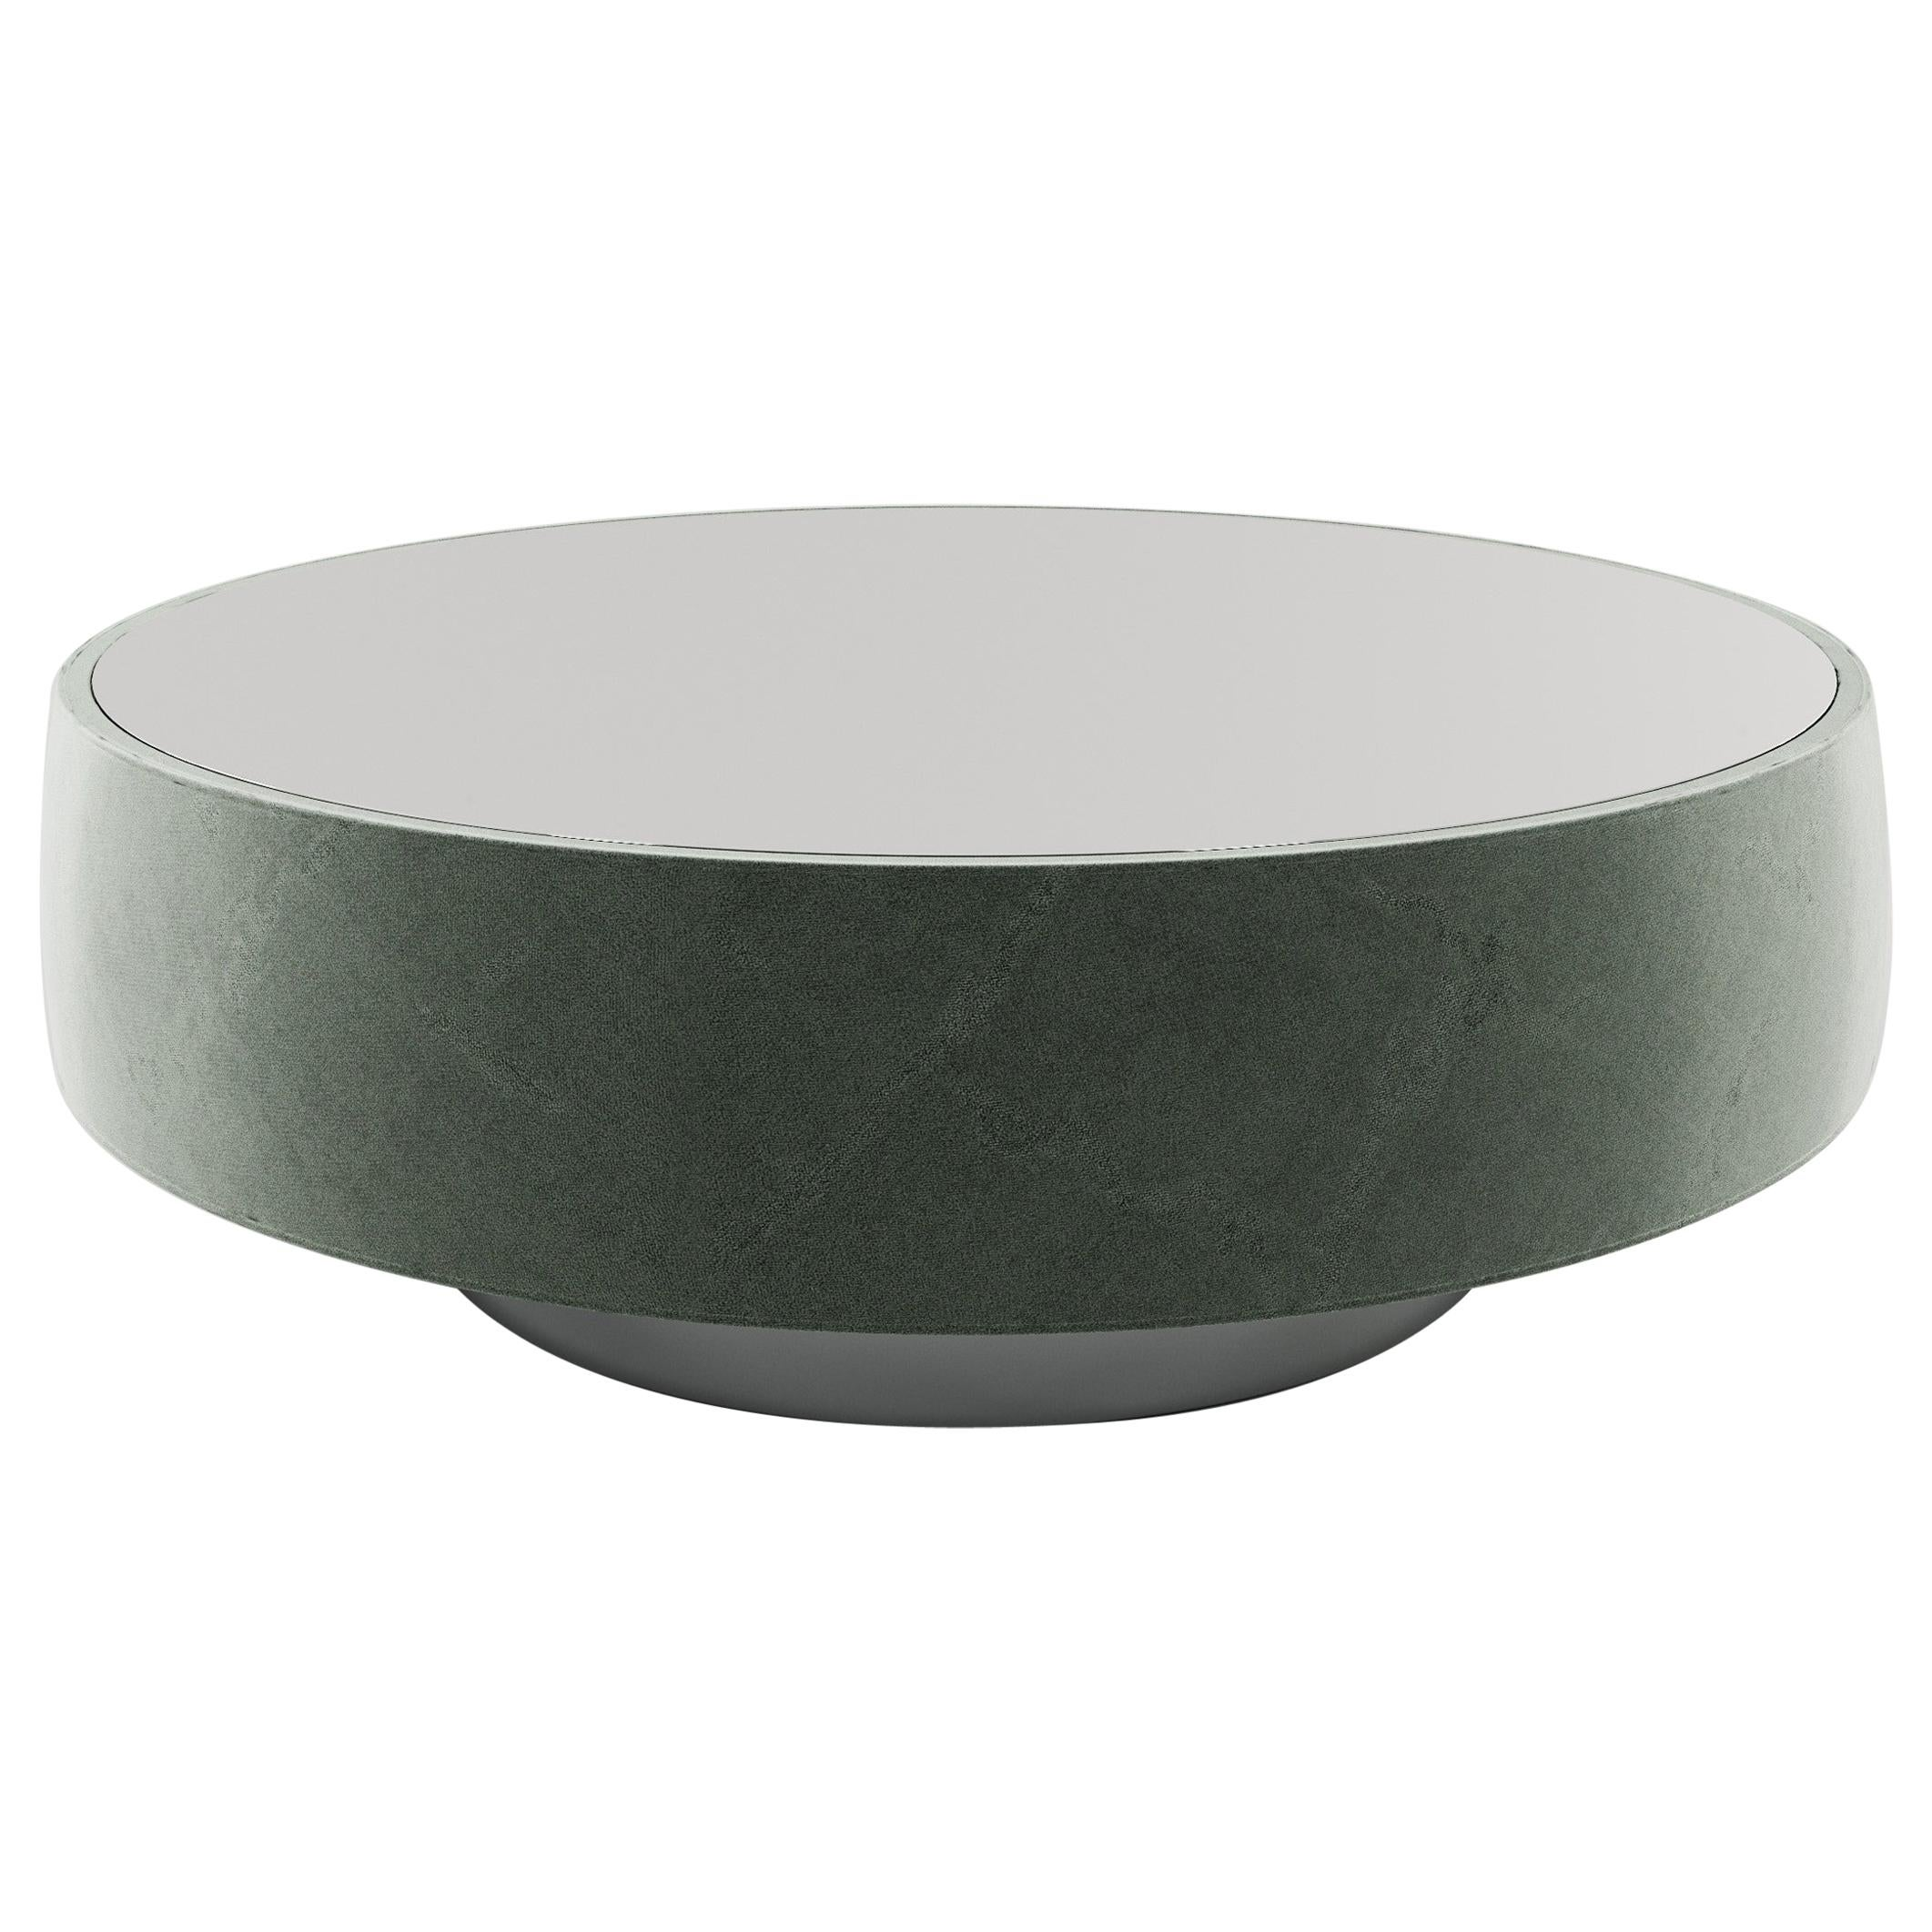 Palma Coffee Table with Black Glass Top and Stainless Steel Base